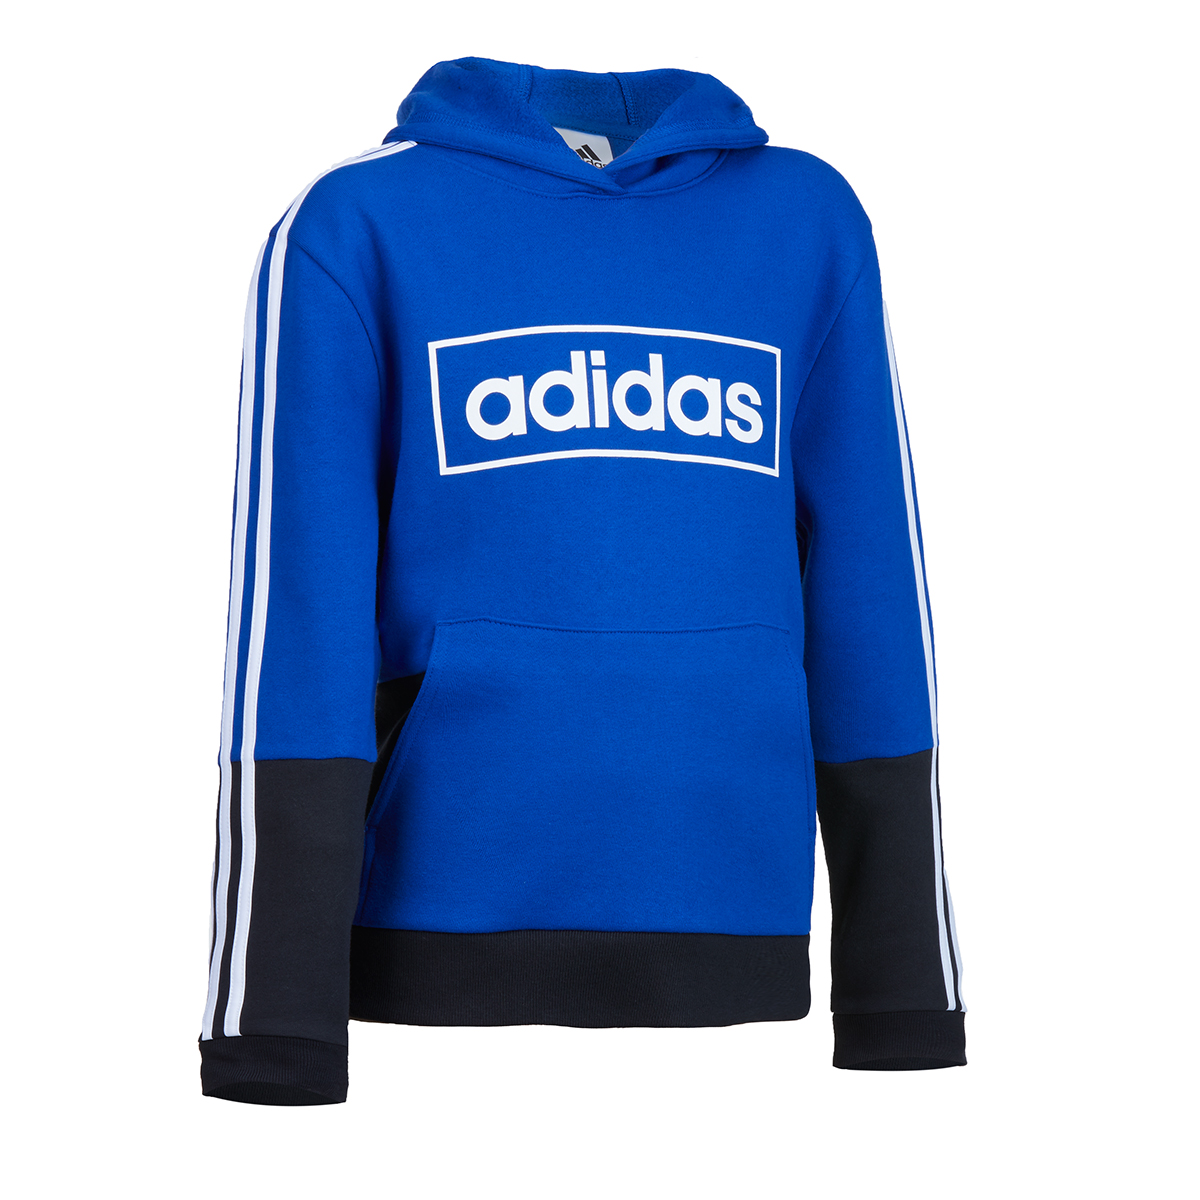 Adidas Little Boys' Colorblock Pullover Hoodie - Blue, 5